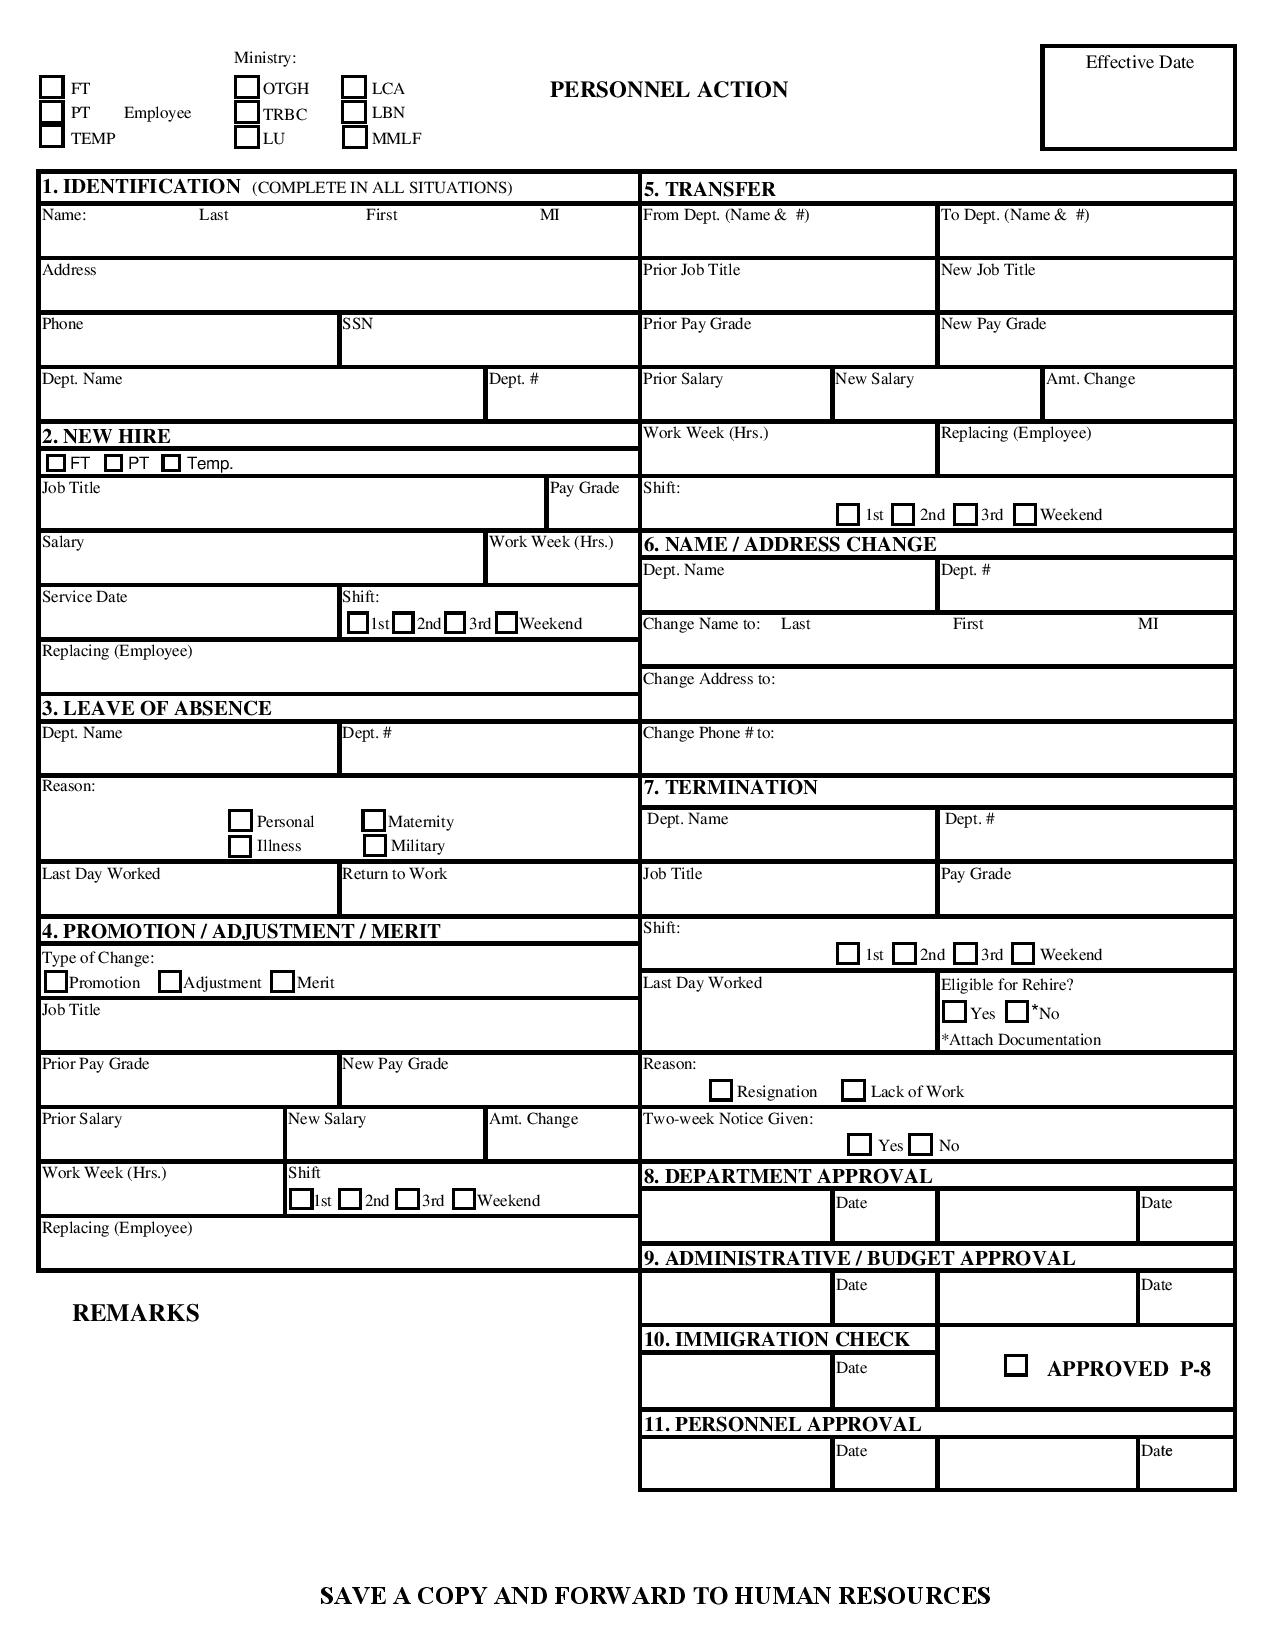 human resource personnel action form page 0011